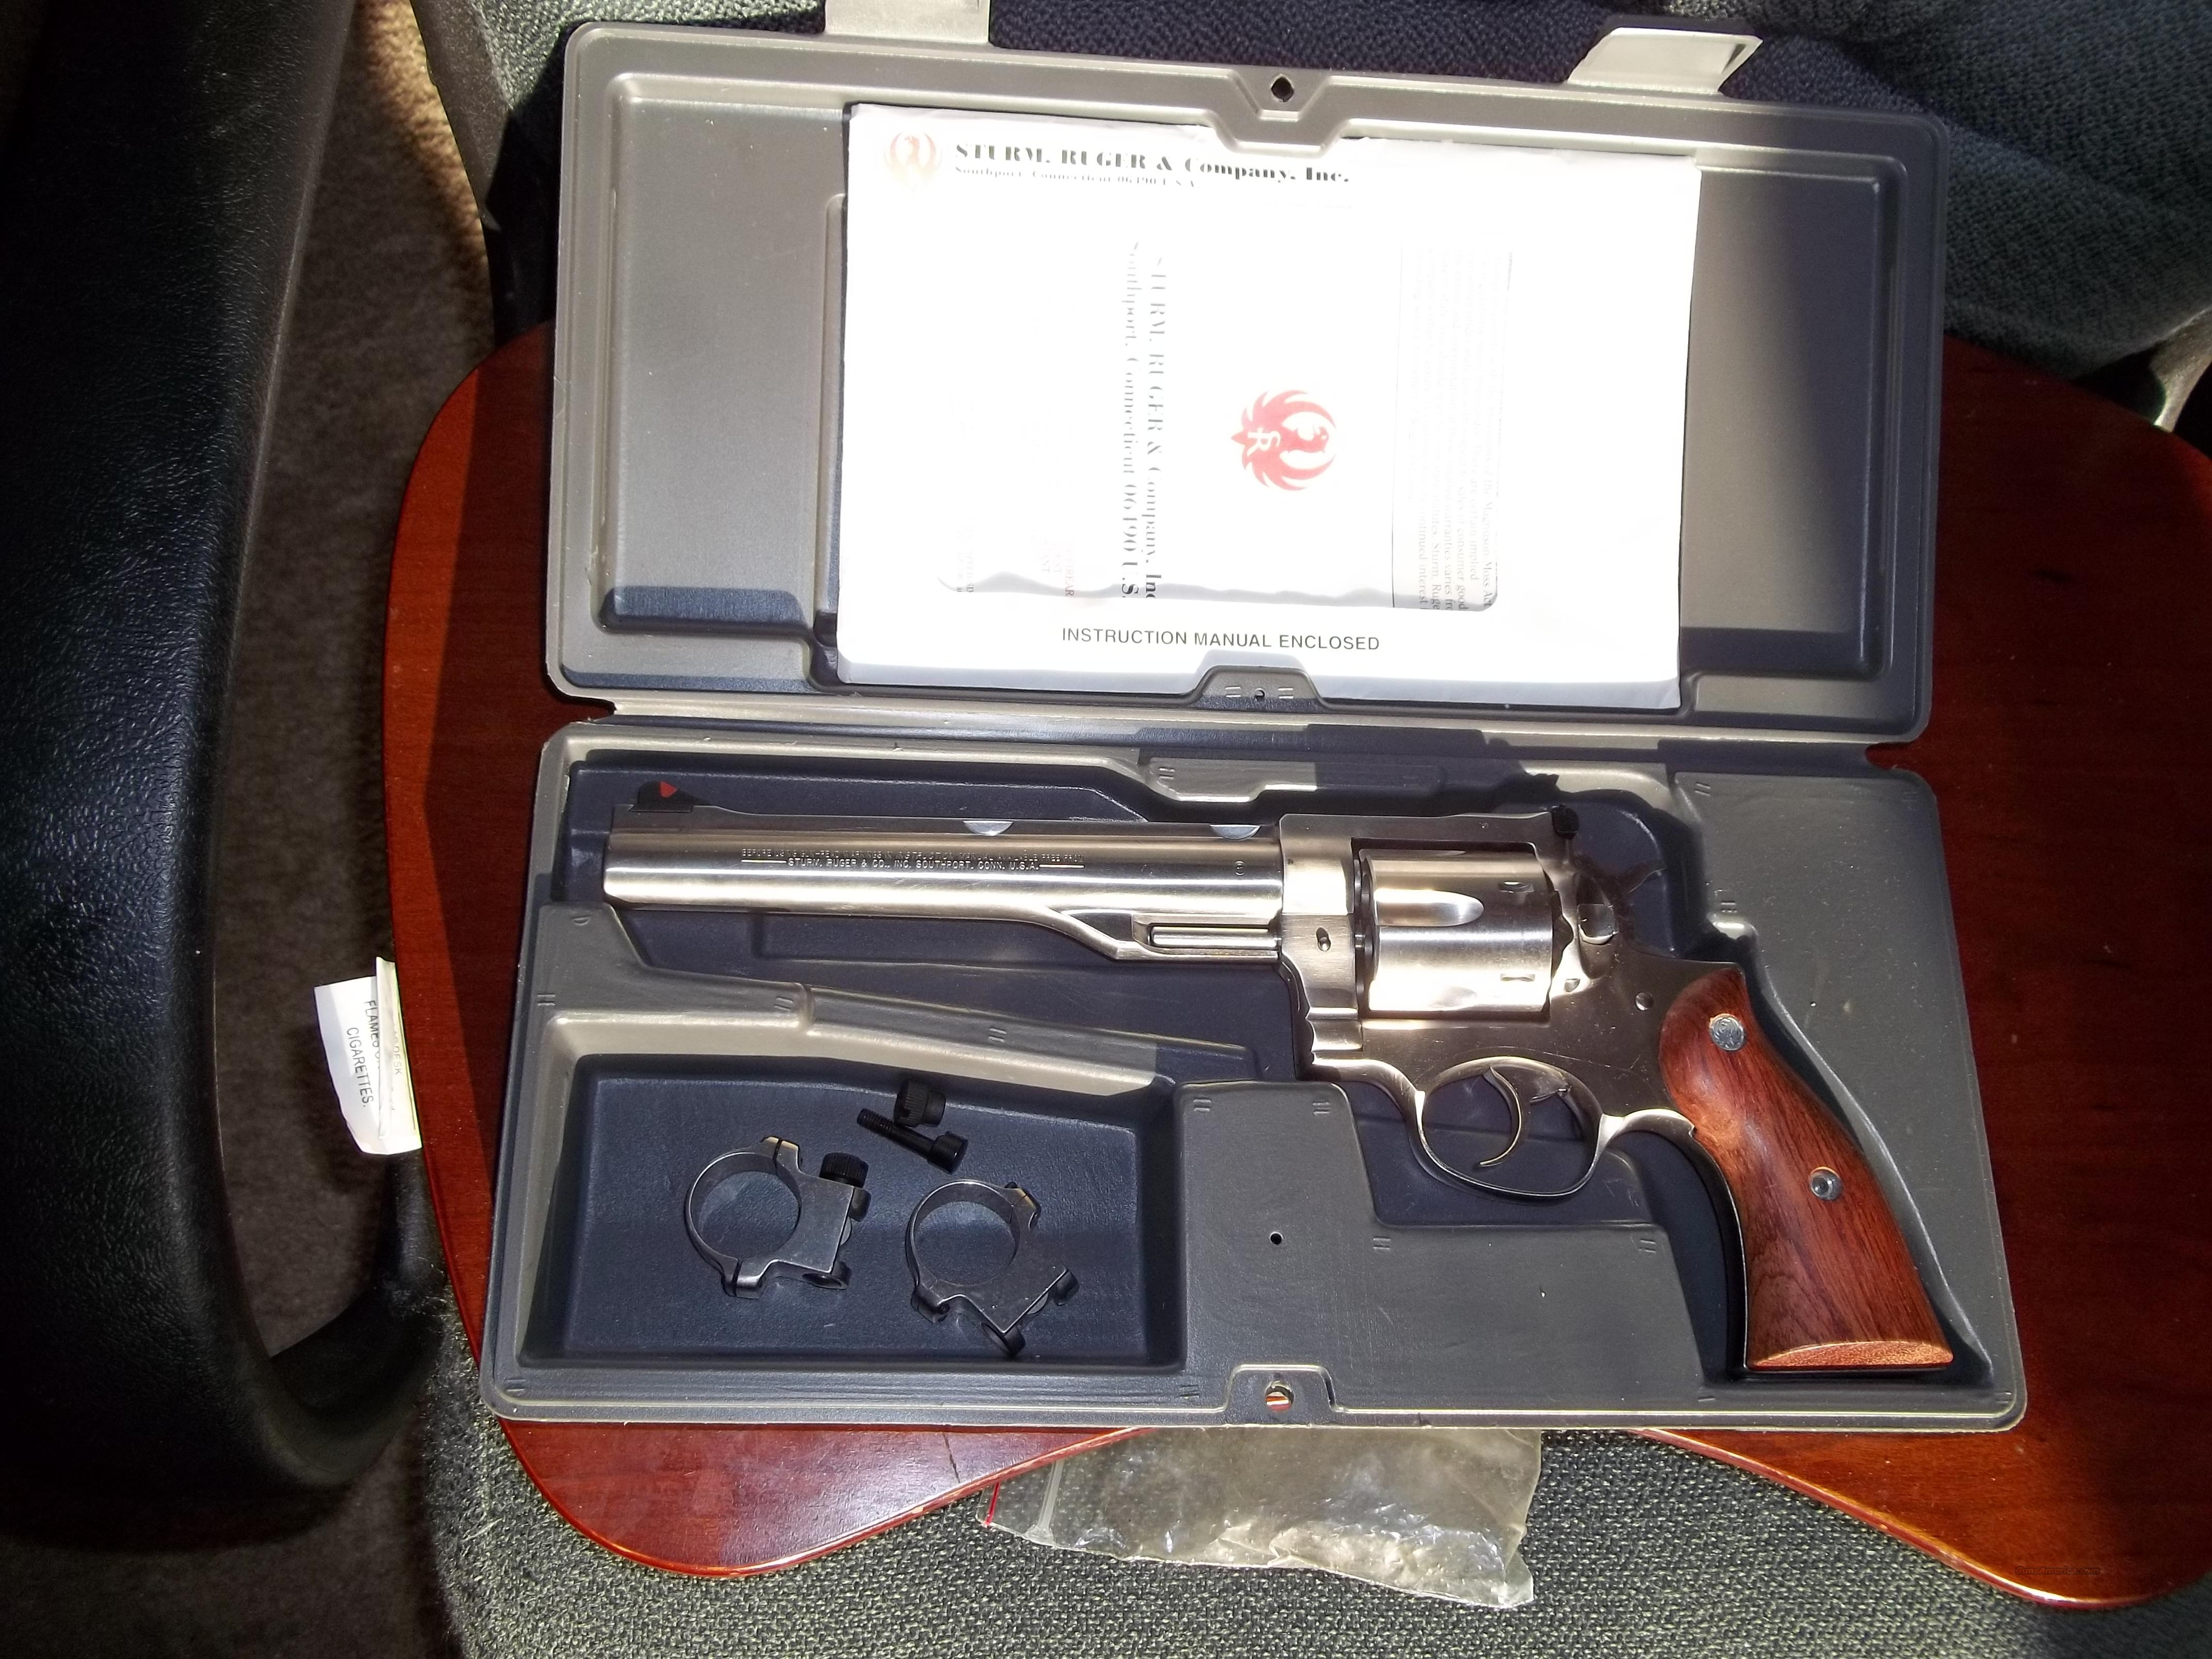 Ruger .44 Magnum Redhawk 7 1/2 inch Stainless Excellent 1996   Guns > Pistols > Ruger Double Action Revolver > Redhawk Type